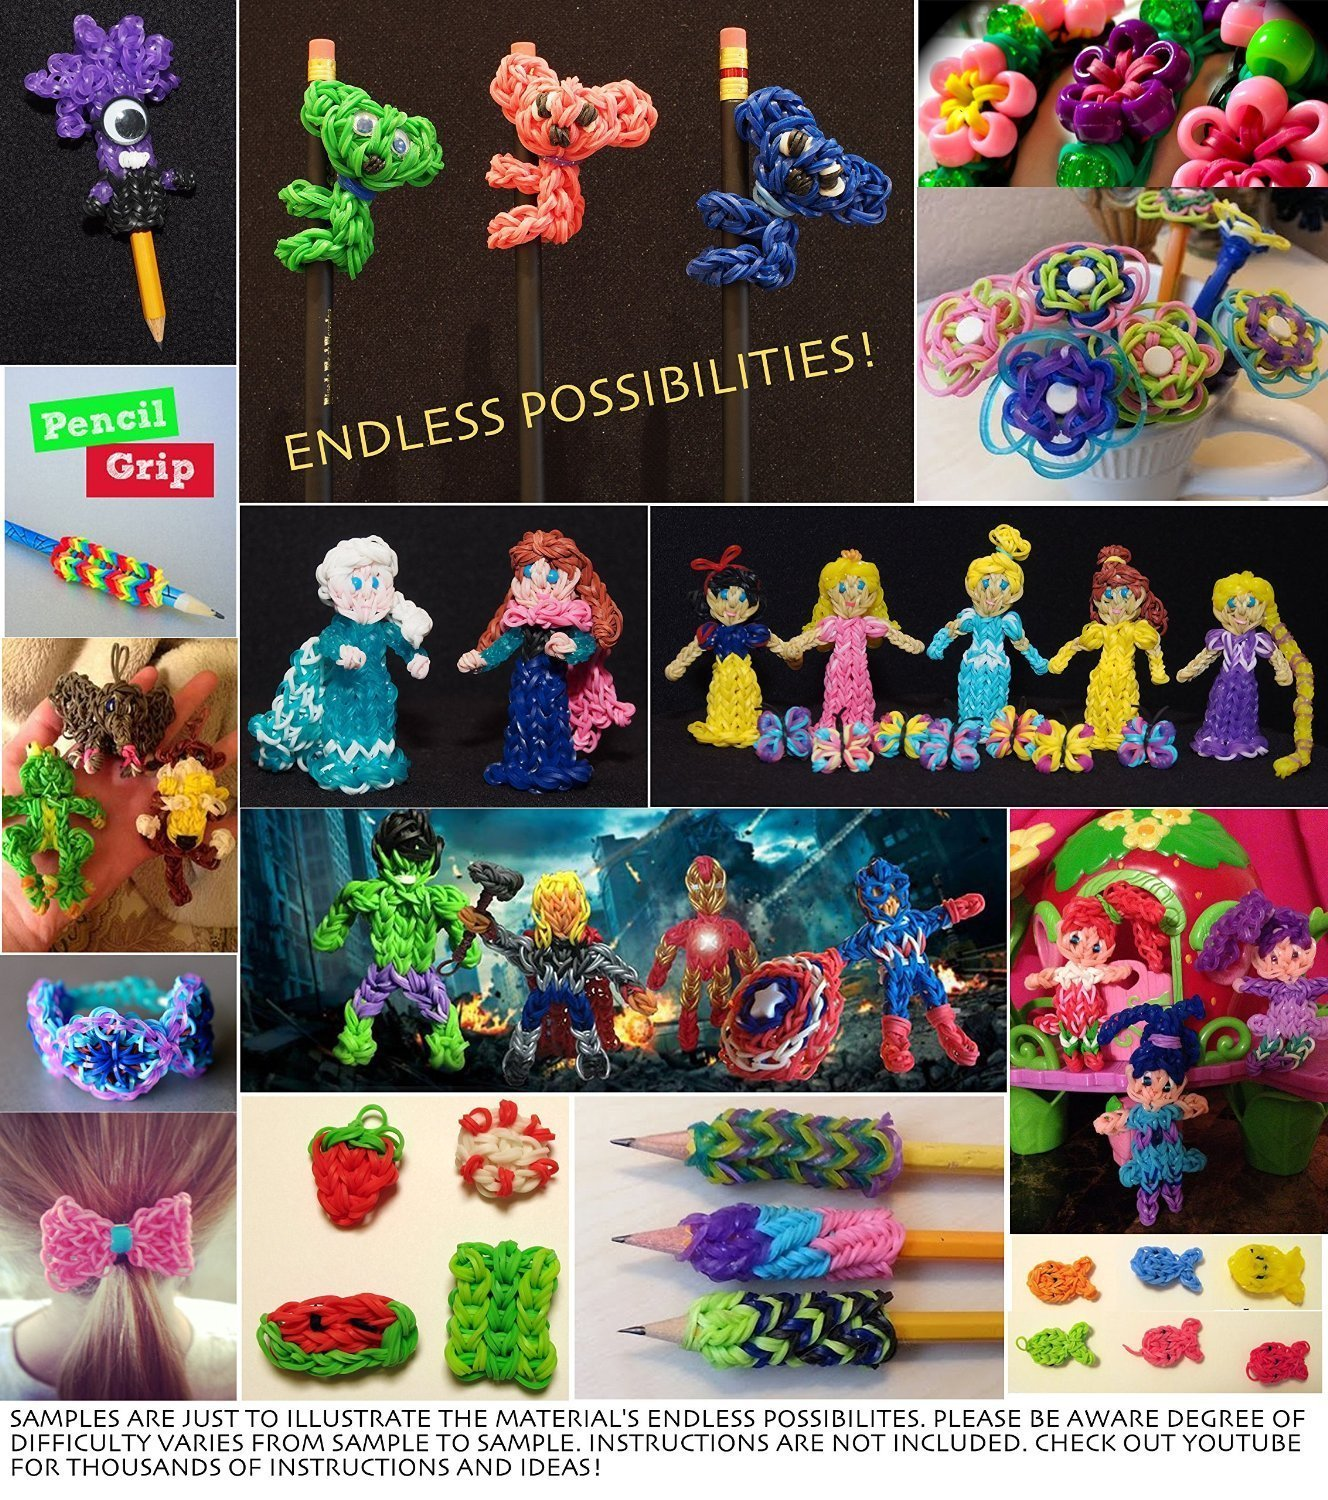 The Originall Rainbow Loom, Colorful Loom Kits for Kids Weaving DIY Crafting with 6800pcs(22 Colors), 50 Beads, 10 Small Hook, 10 Charms,100 S Clips,1 Big Crochet,2 Big Hook, 4 Y-Shape Looms